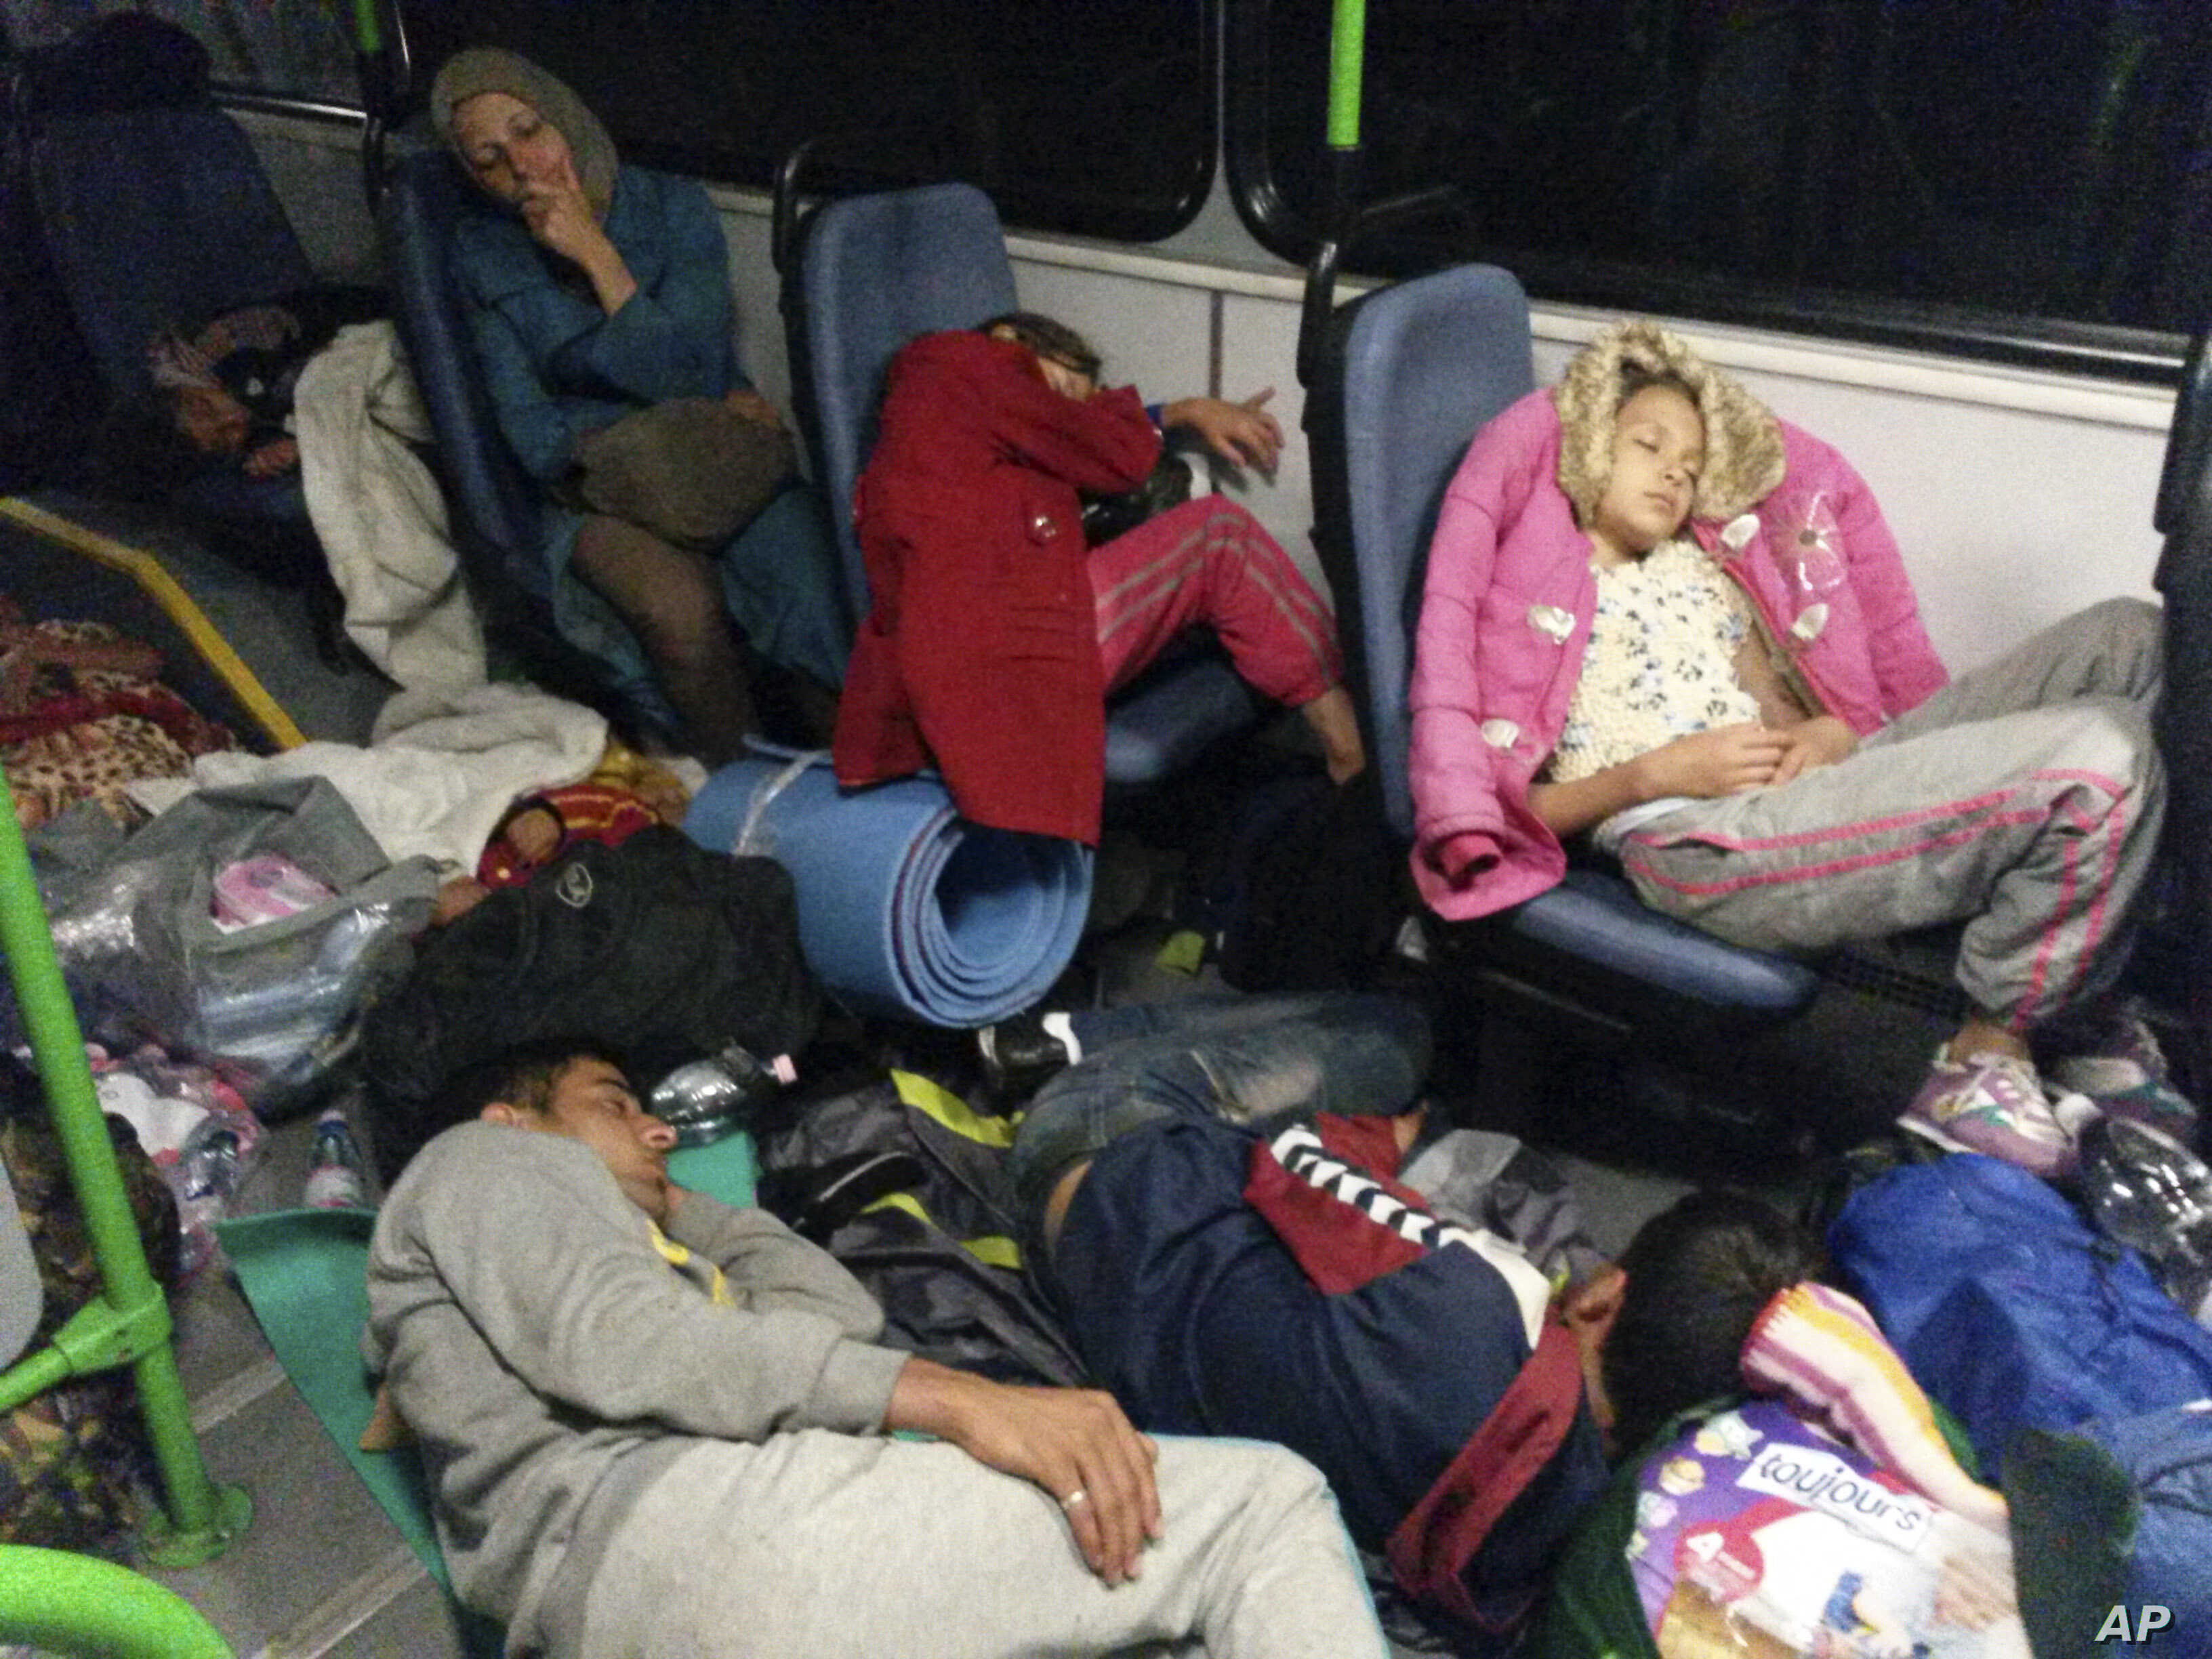 Migrants sit in a bus from Budapest to the Austrian border near Gyor, Hungary, Sept. 5, 2015.